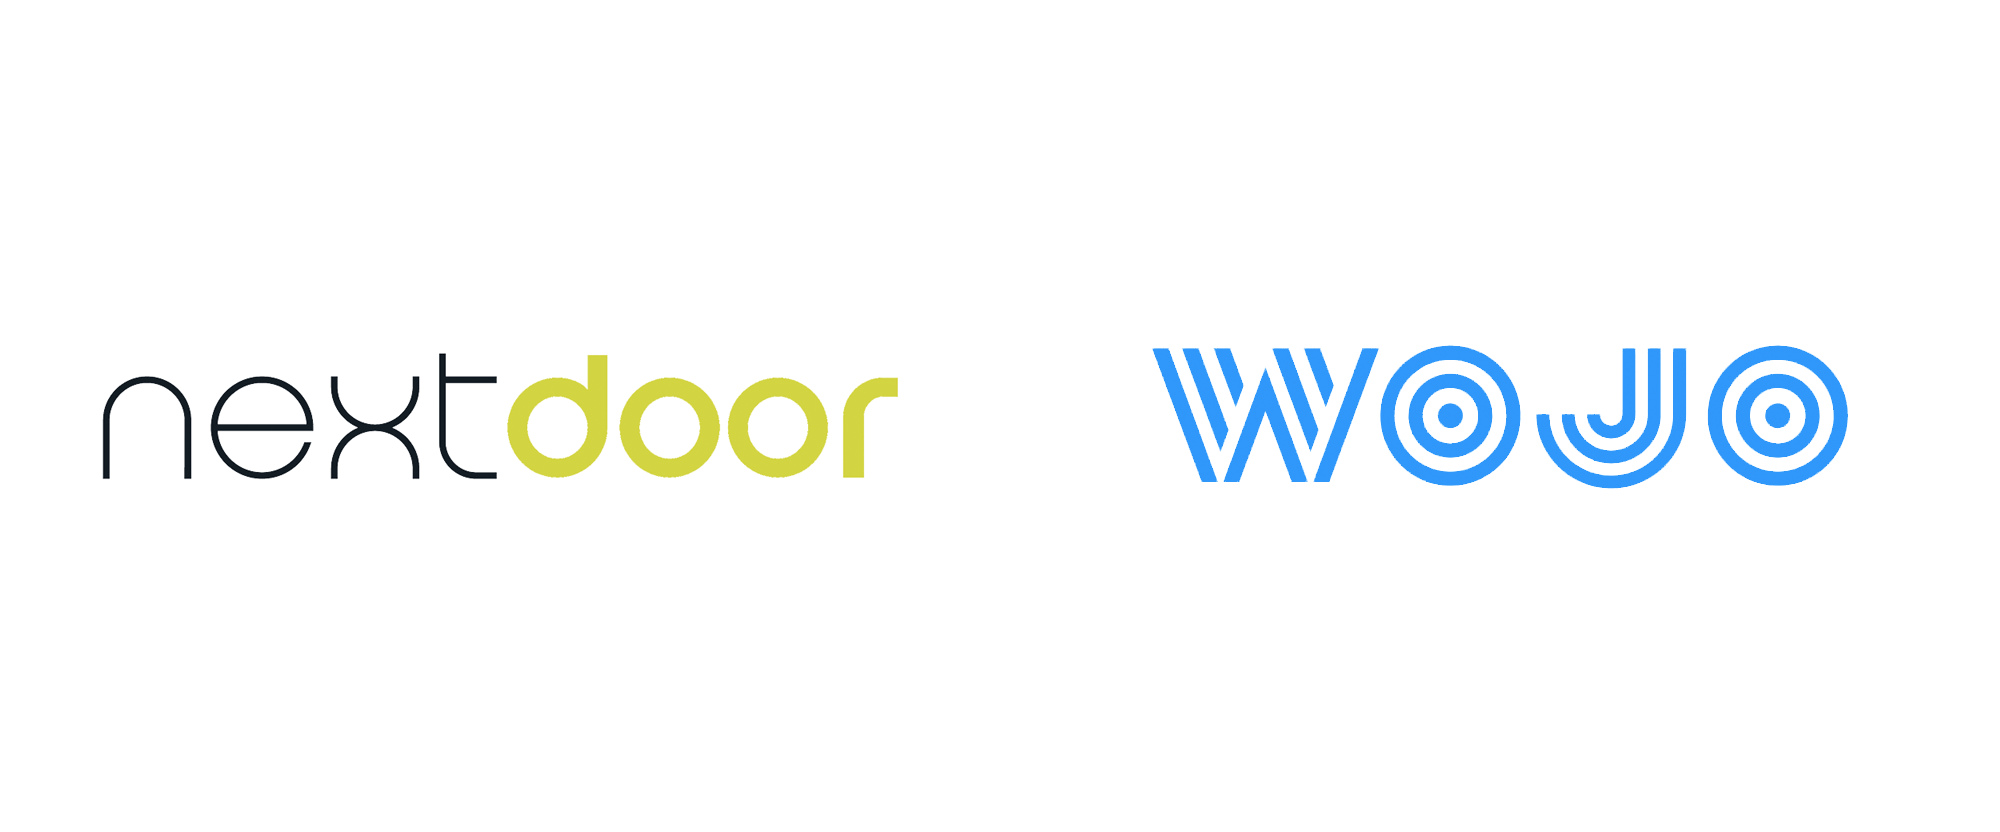 New Logo for Wojo by Agence W